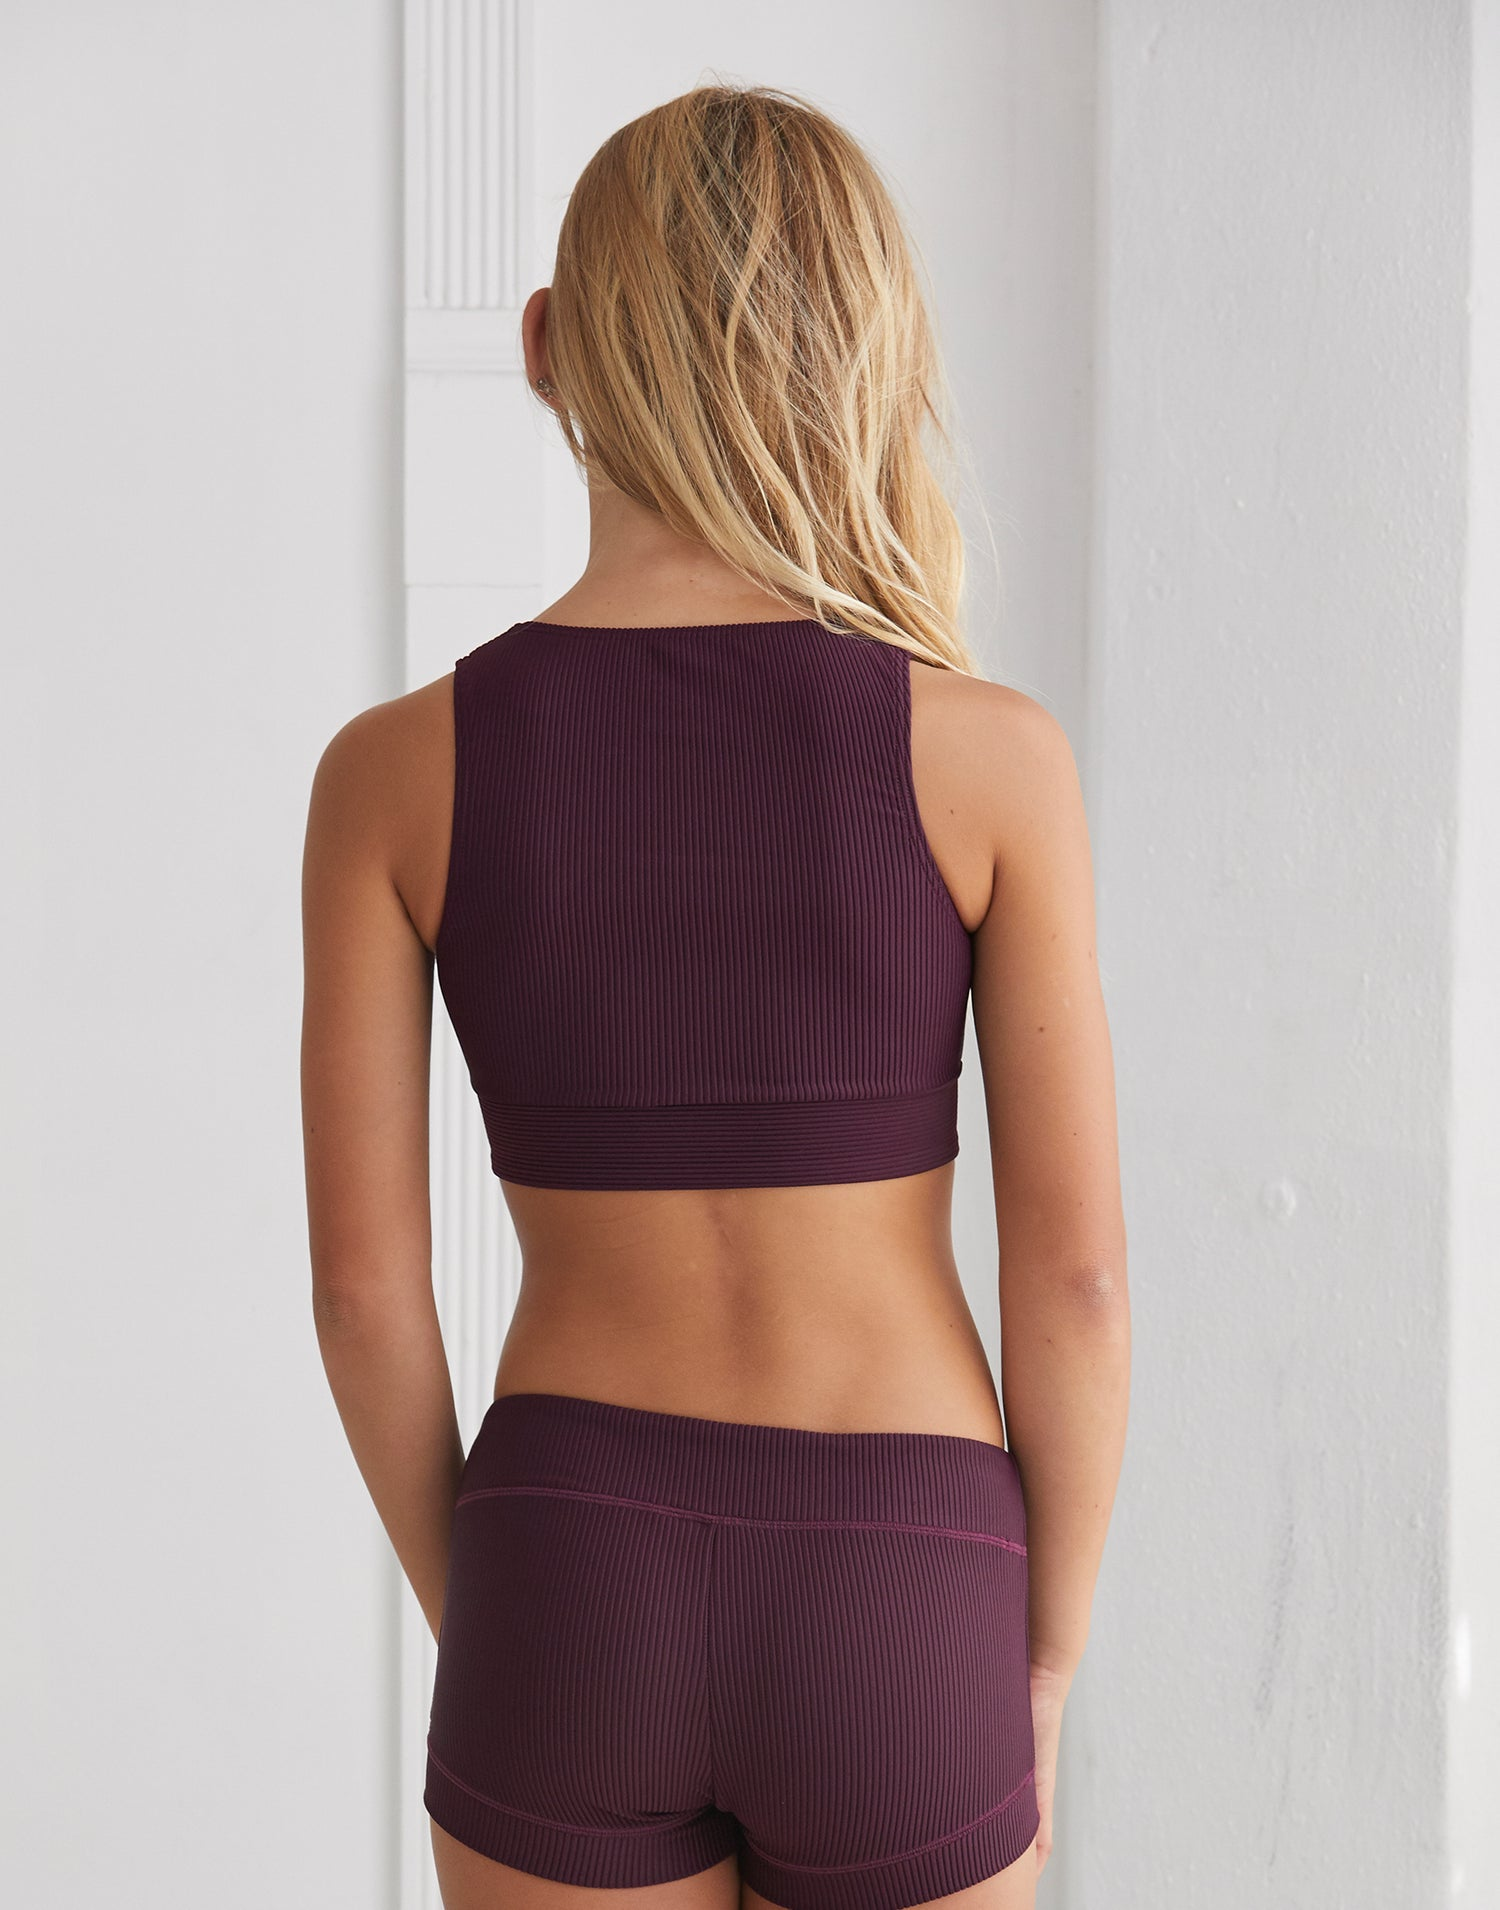 Child Audrey Wrap Top in Eggplant Rib - back view